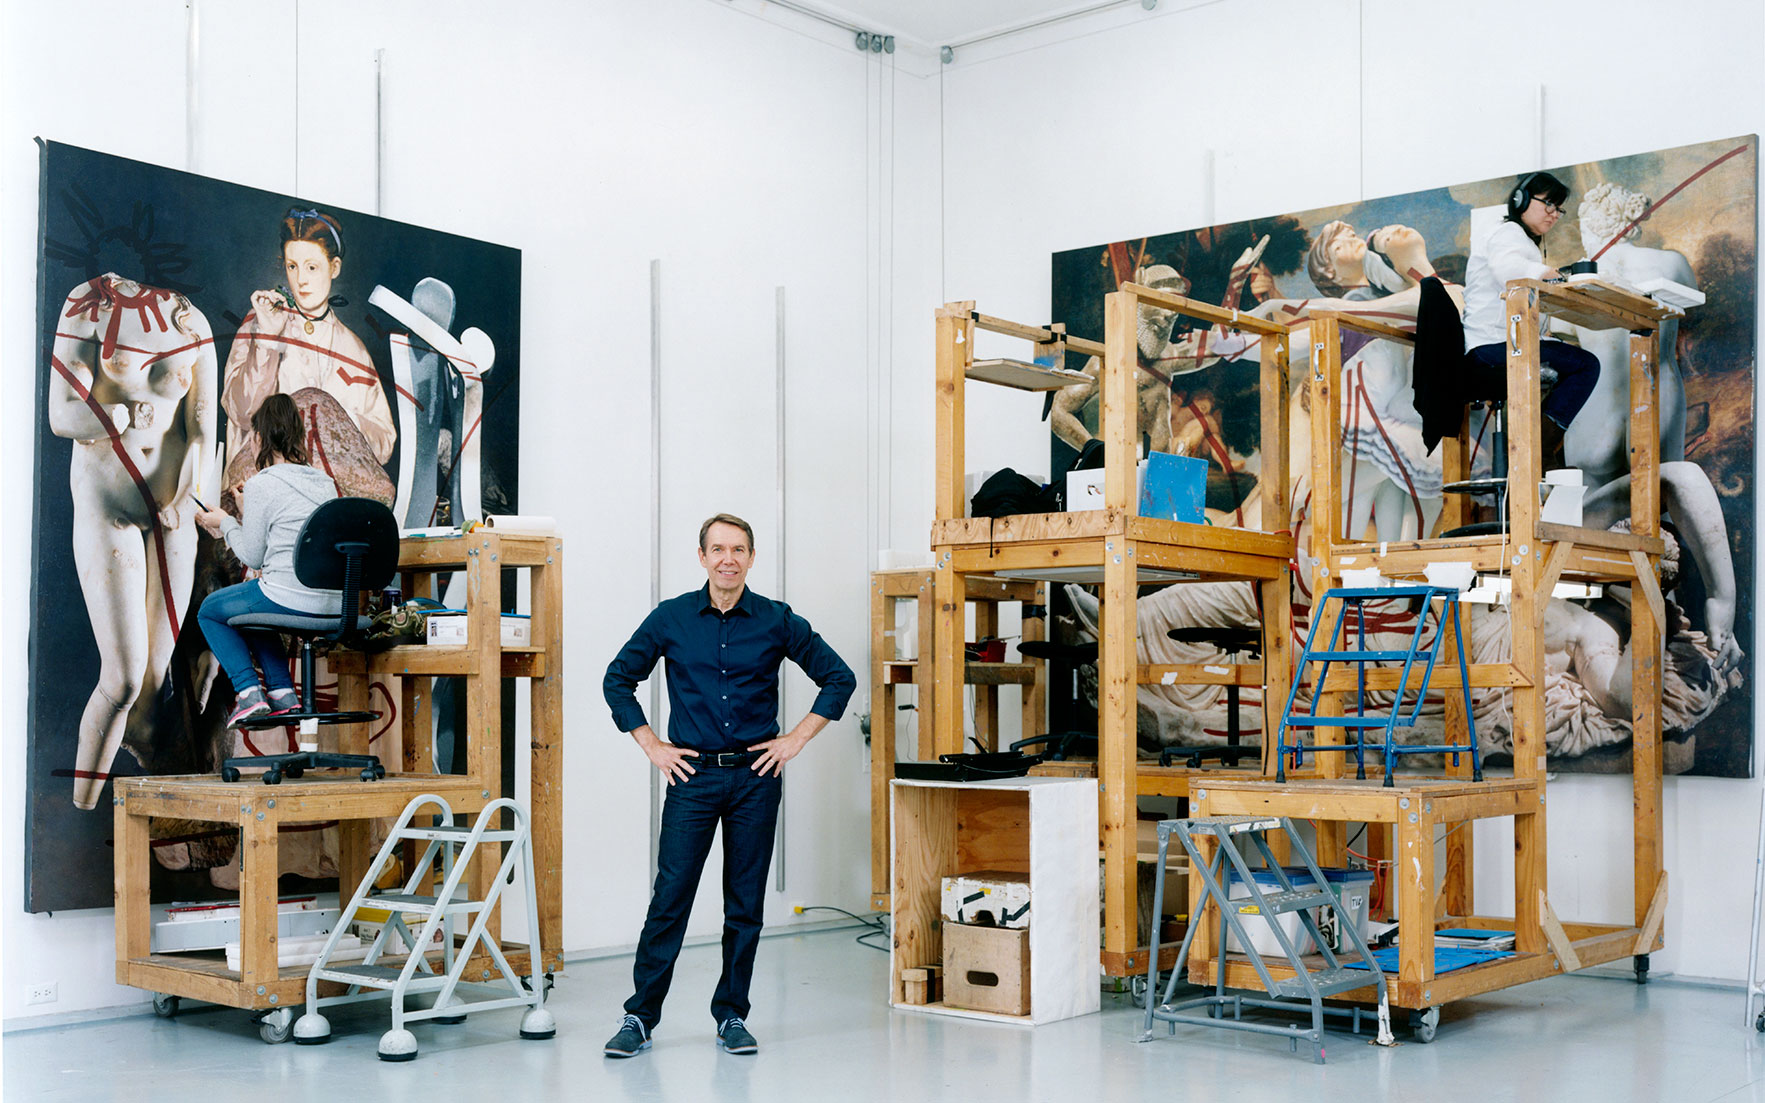 Jeff Koons standing in his studio